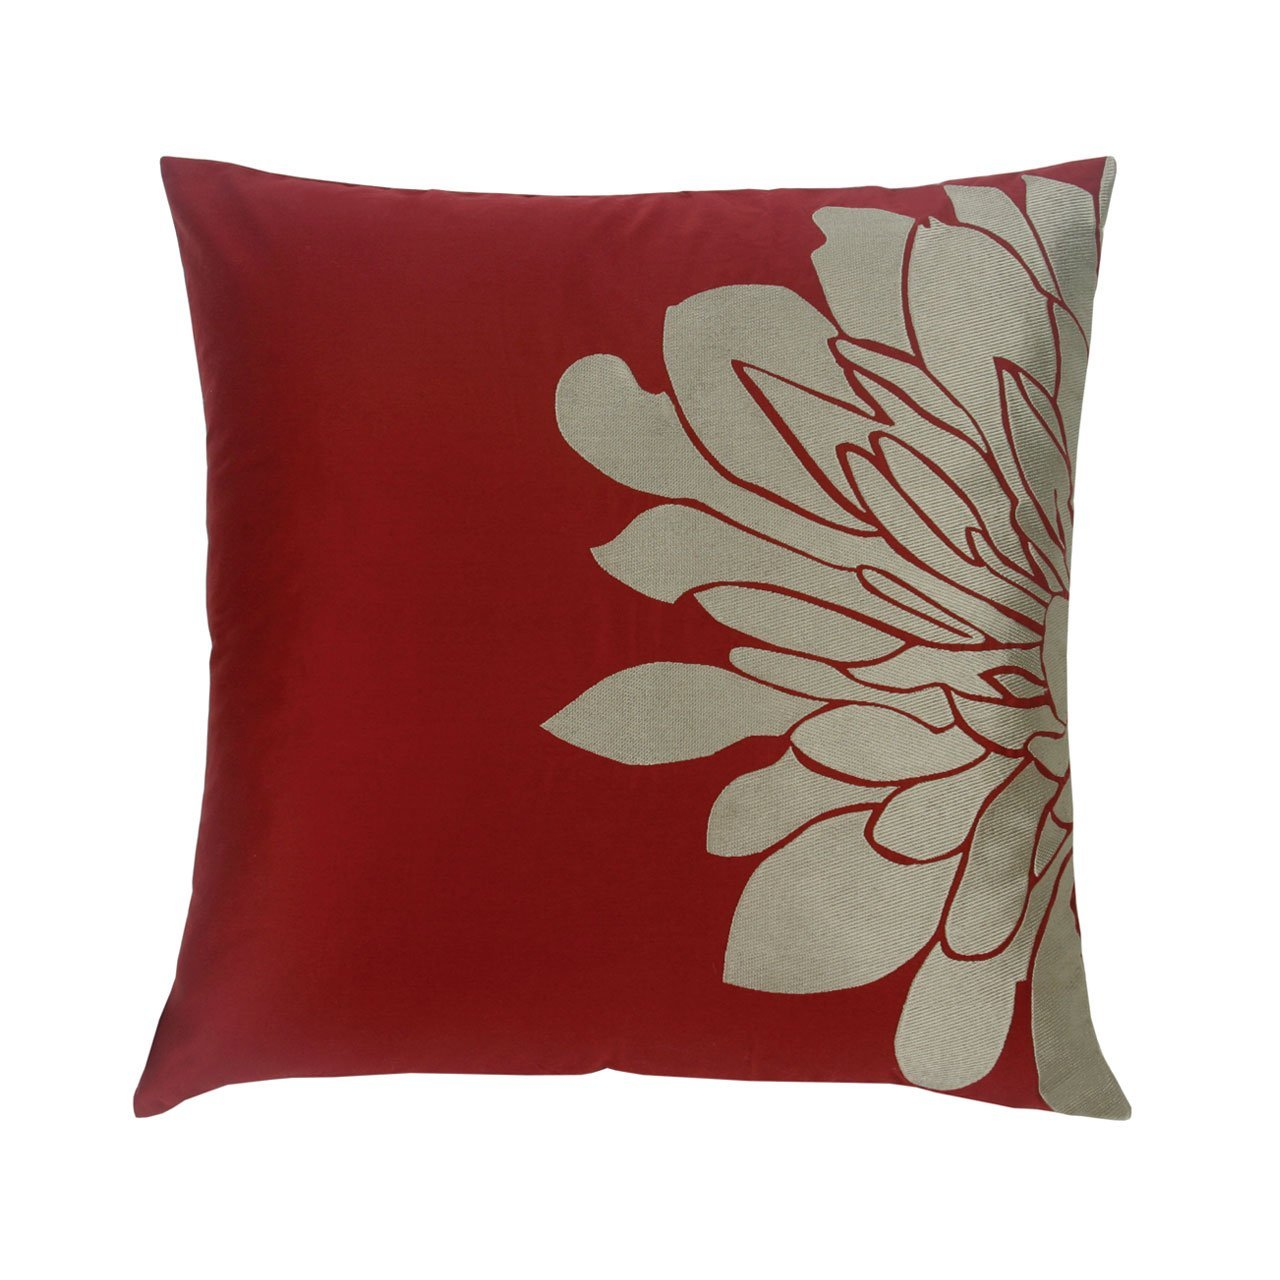 3 Unexpected Places to Find Throw Pillows  Lorri Dyner Design